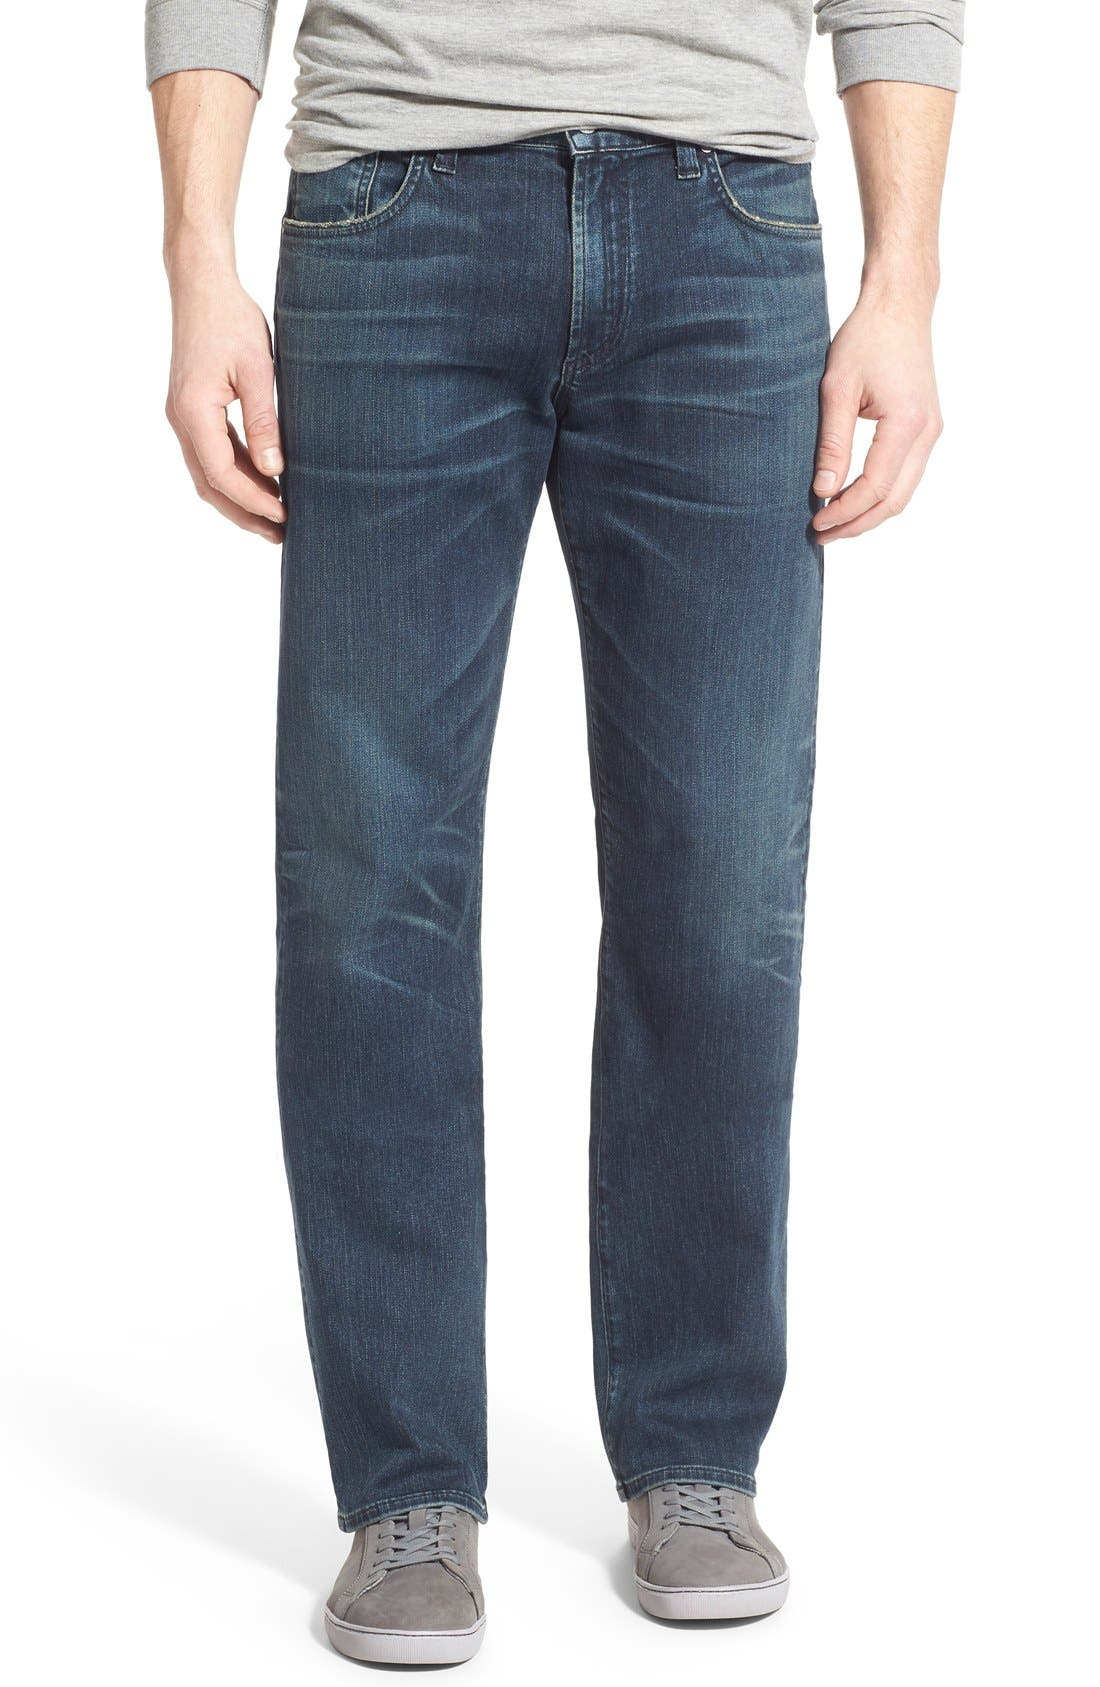 PERFORM - Sid Straight Leg Jeans,                             Main thumbnail 1, color,                             NORLAND